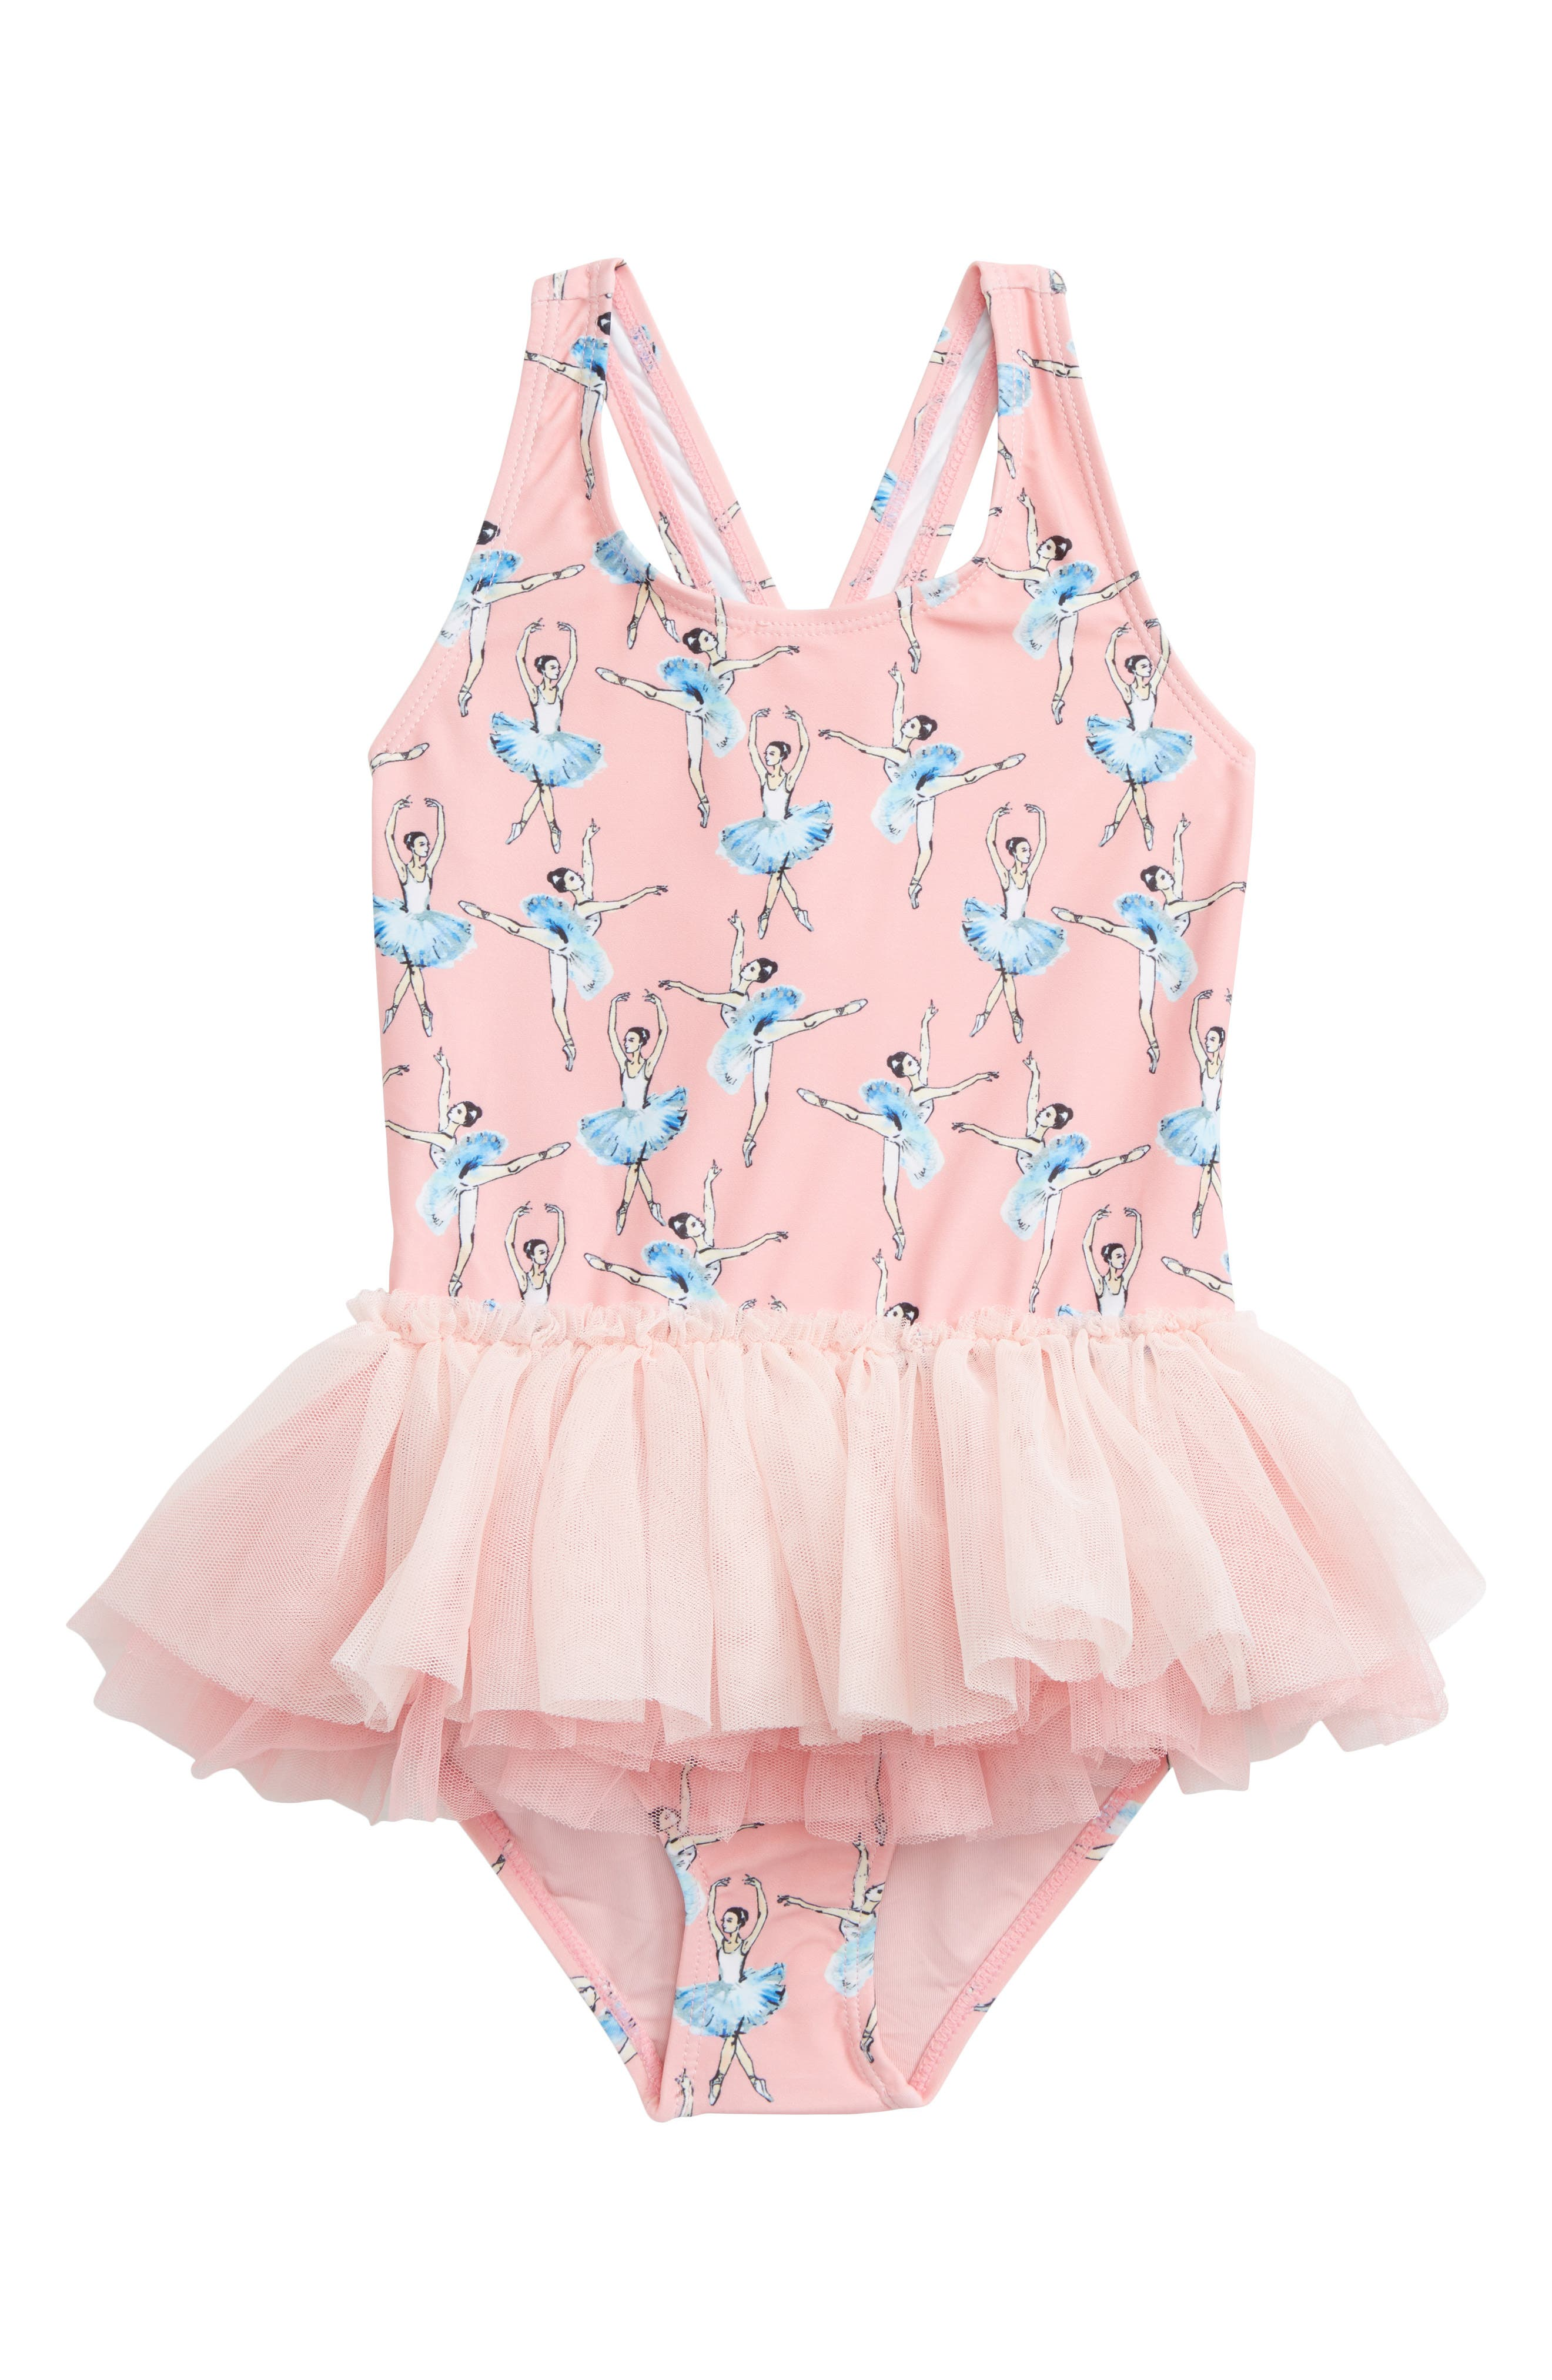 Basque Ballerinas One-Piece Swimsuit,                         Main,                         color, Pink